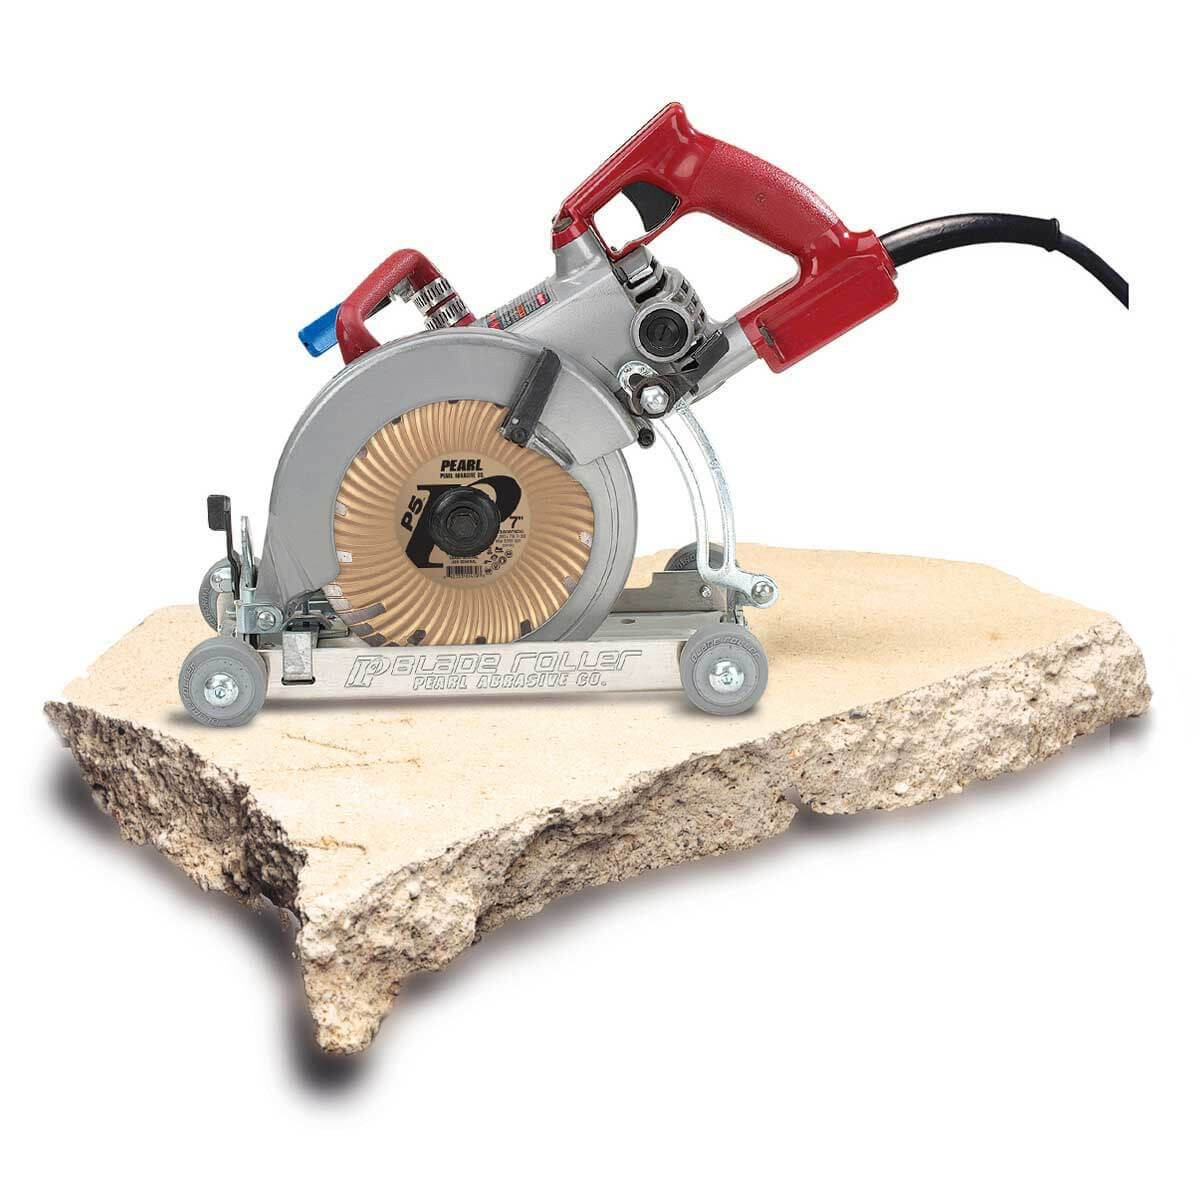 Pearl Blade Roller Skilsaw stone